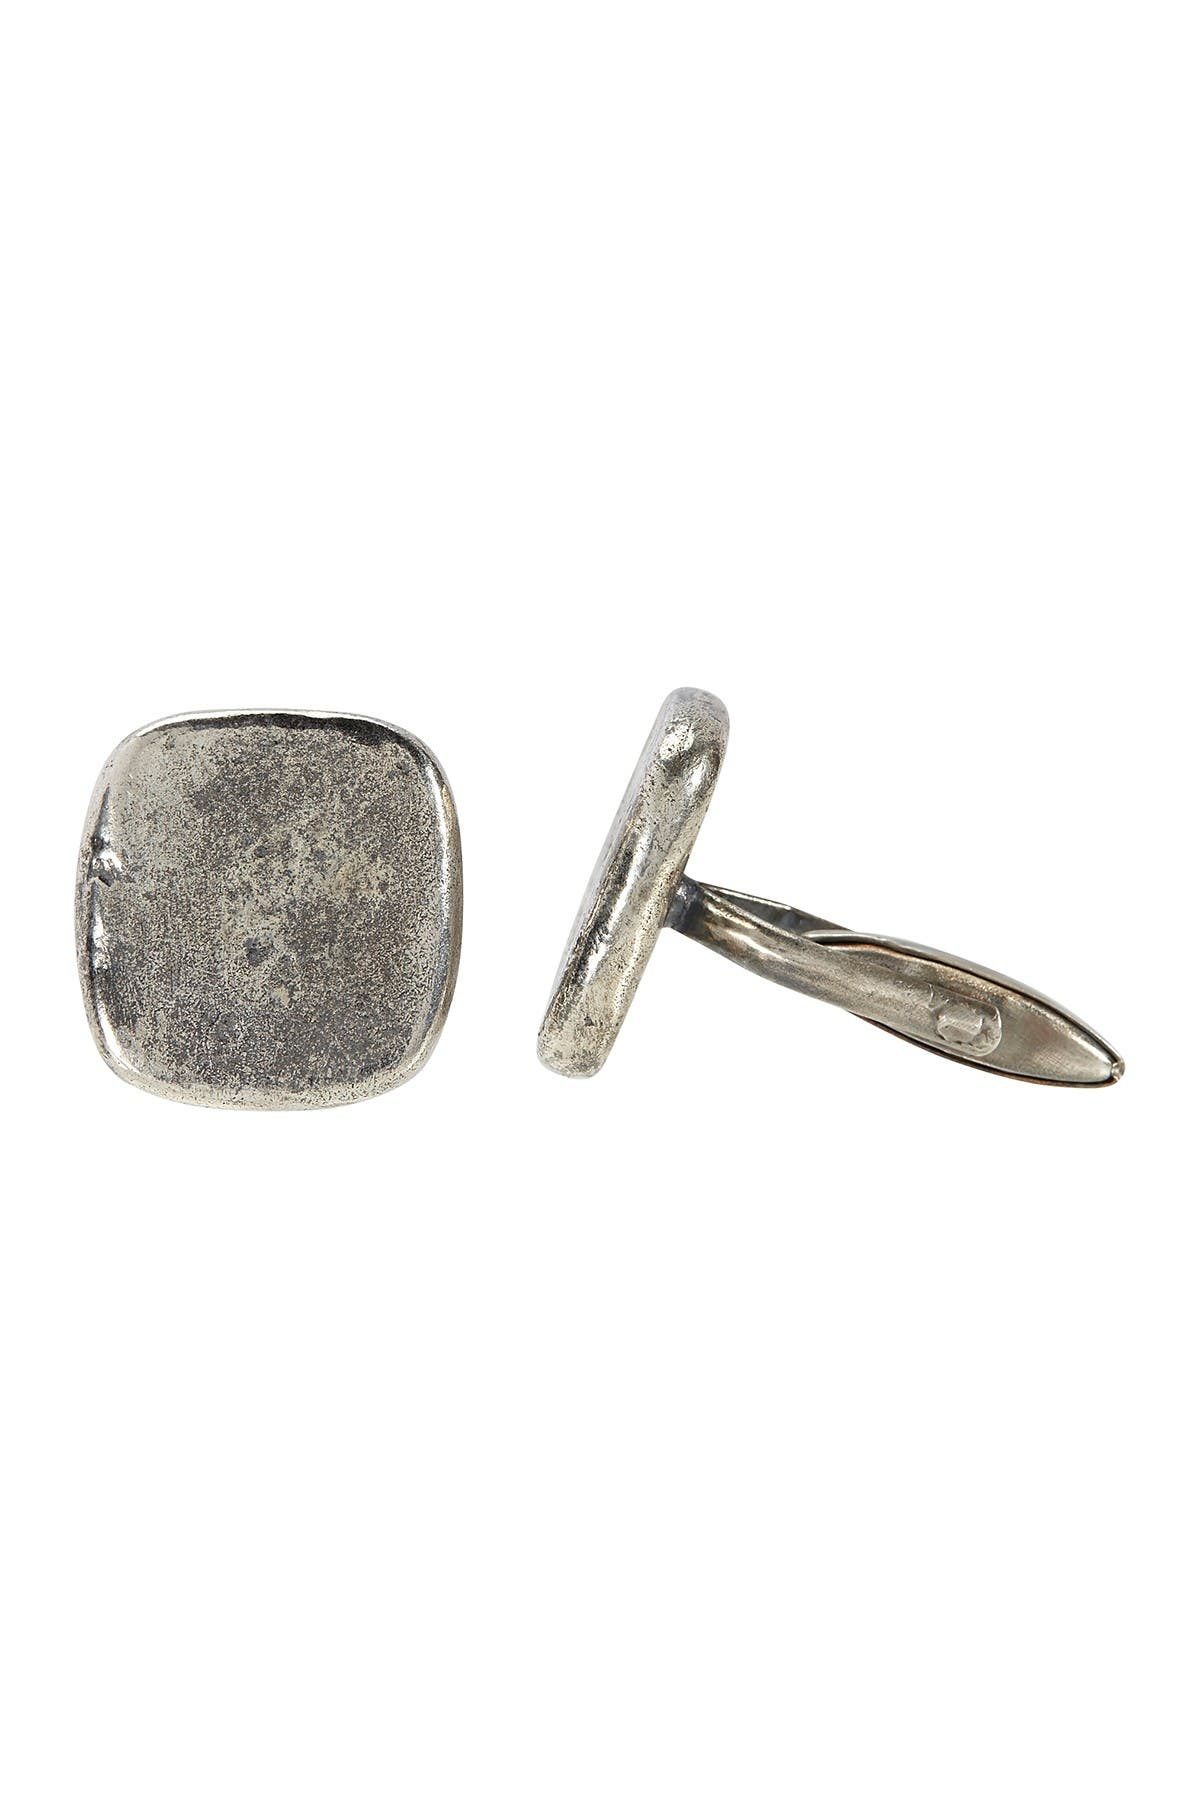 Image of John Varvatos Collection Distressed Silver Cufflinks